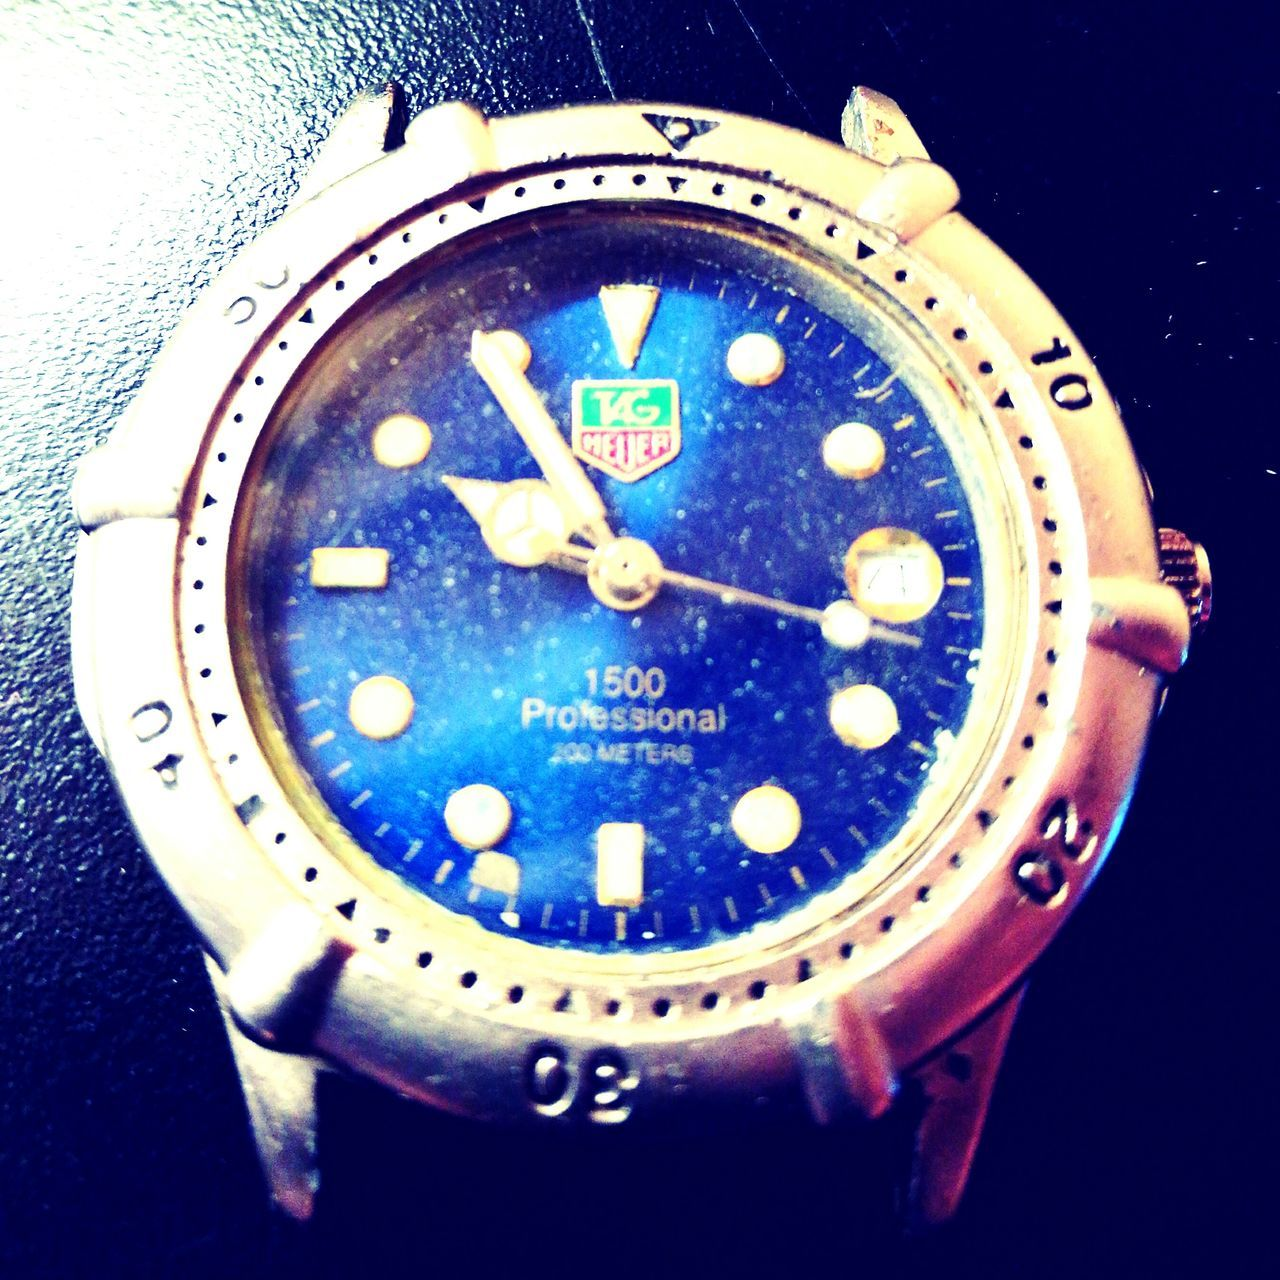 Close-up Time No People 30yearoldtagheuer Tag Heuer Watch Watches Heritage project wedding gift. Lieblingsteil